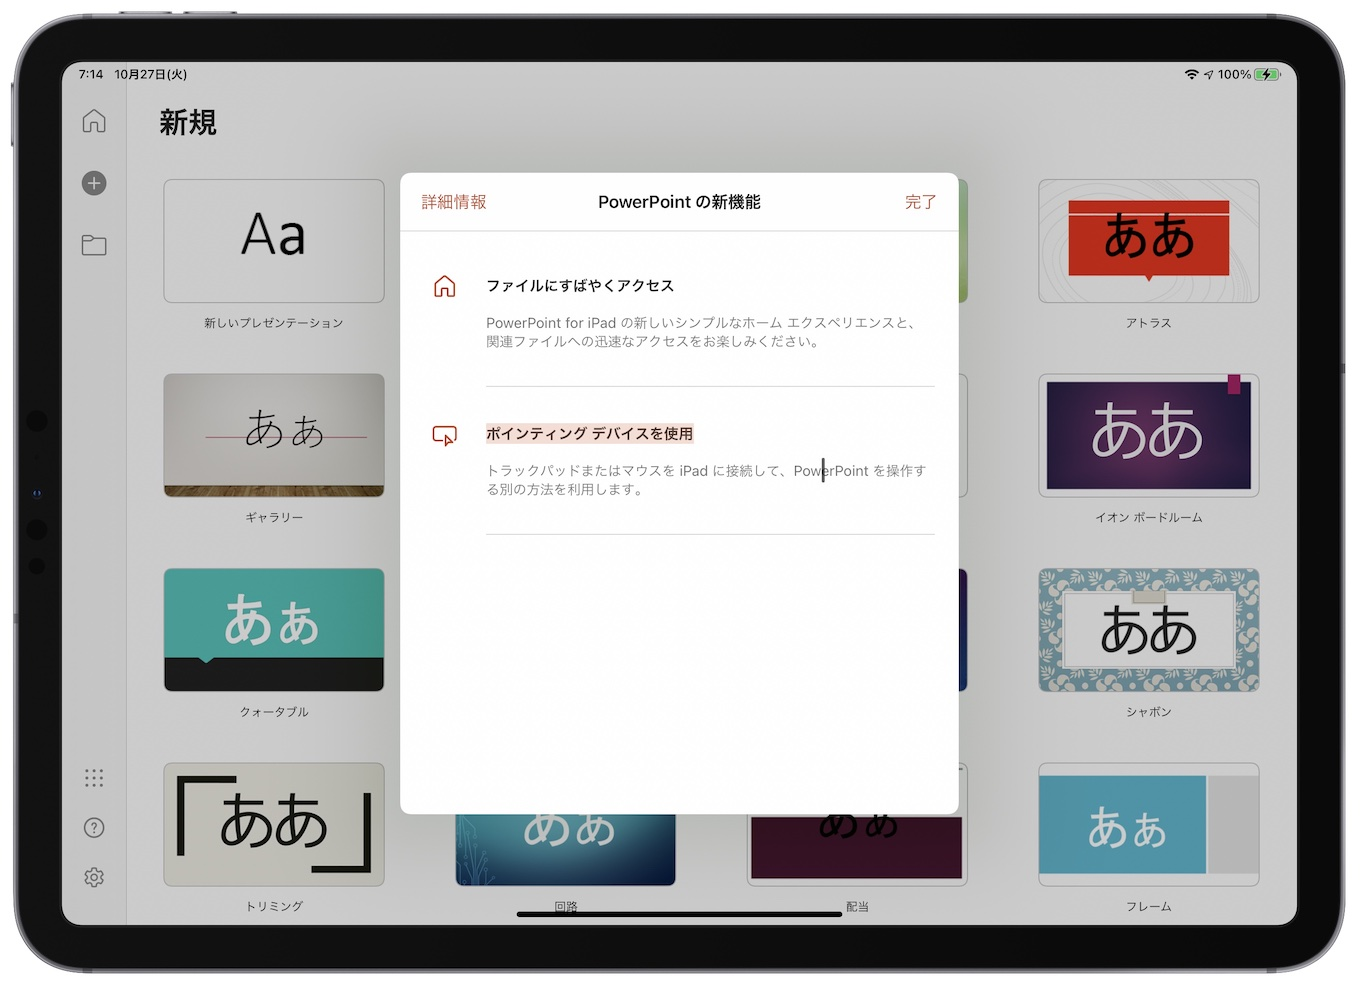 PowerPoint for iPadOS support trackpad and mouse